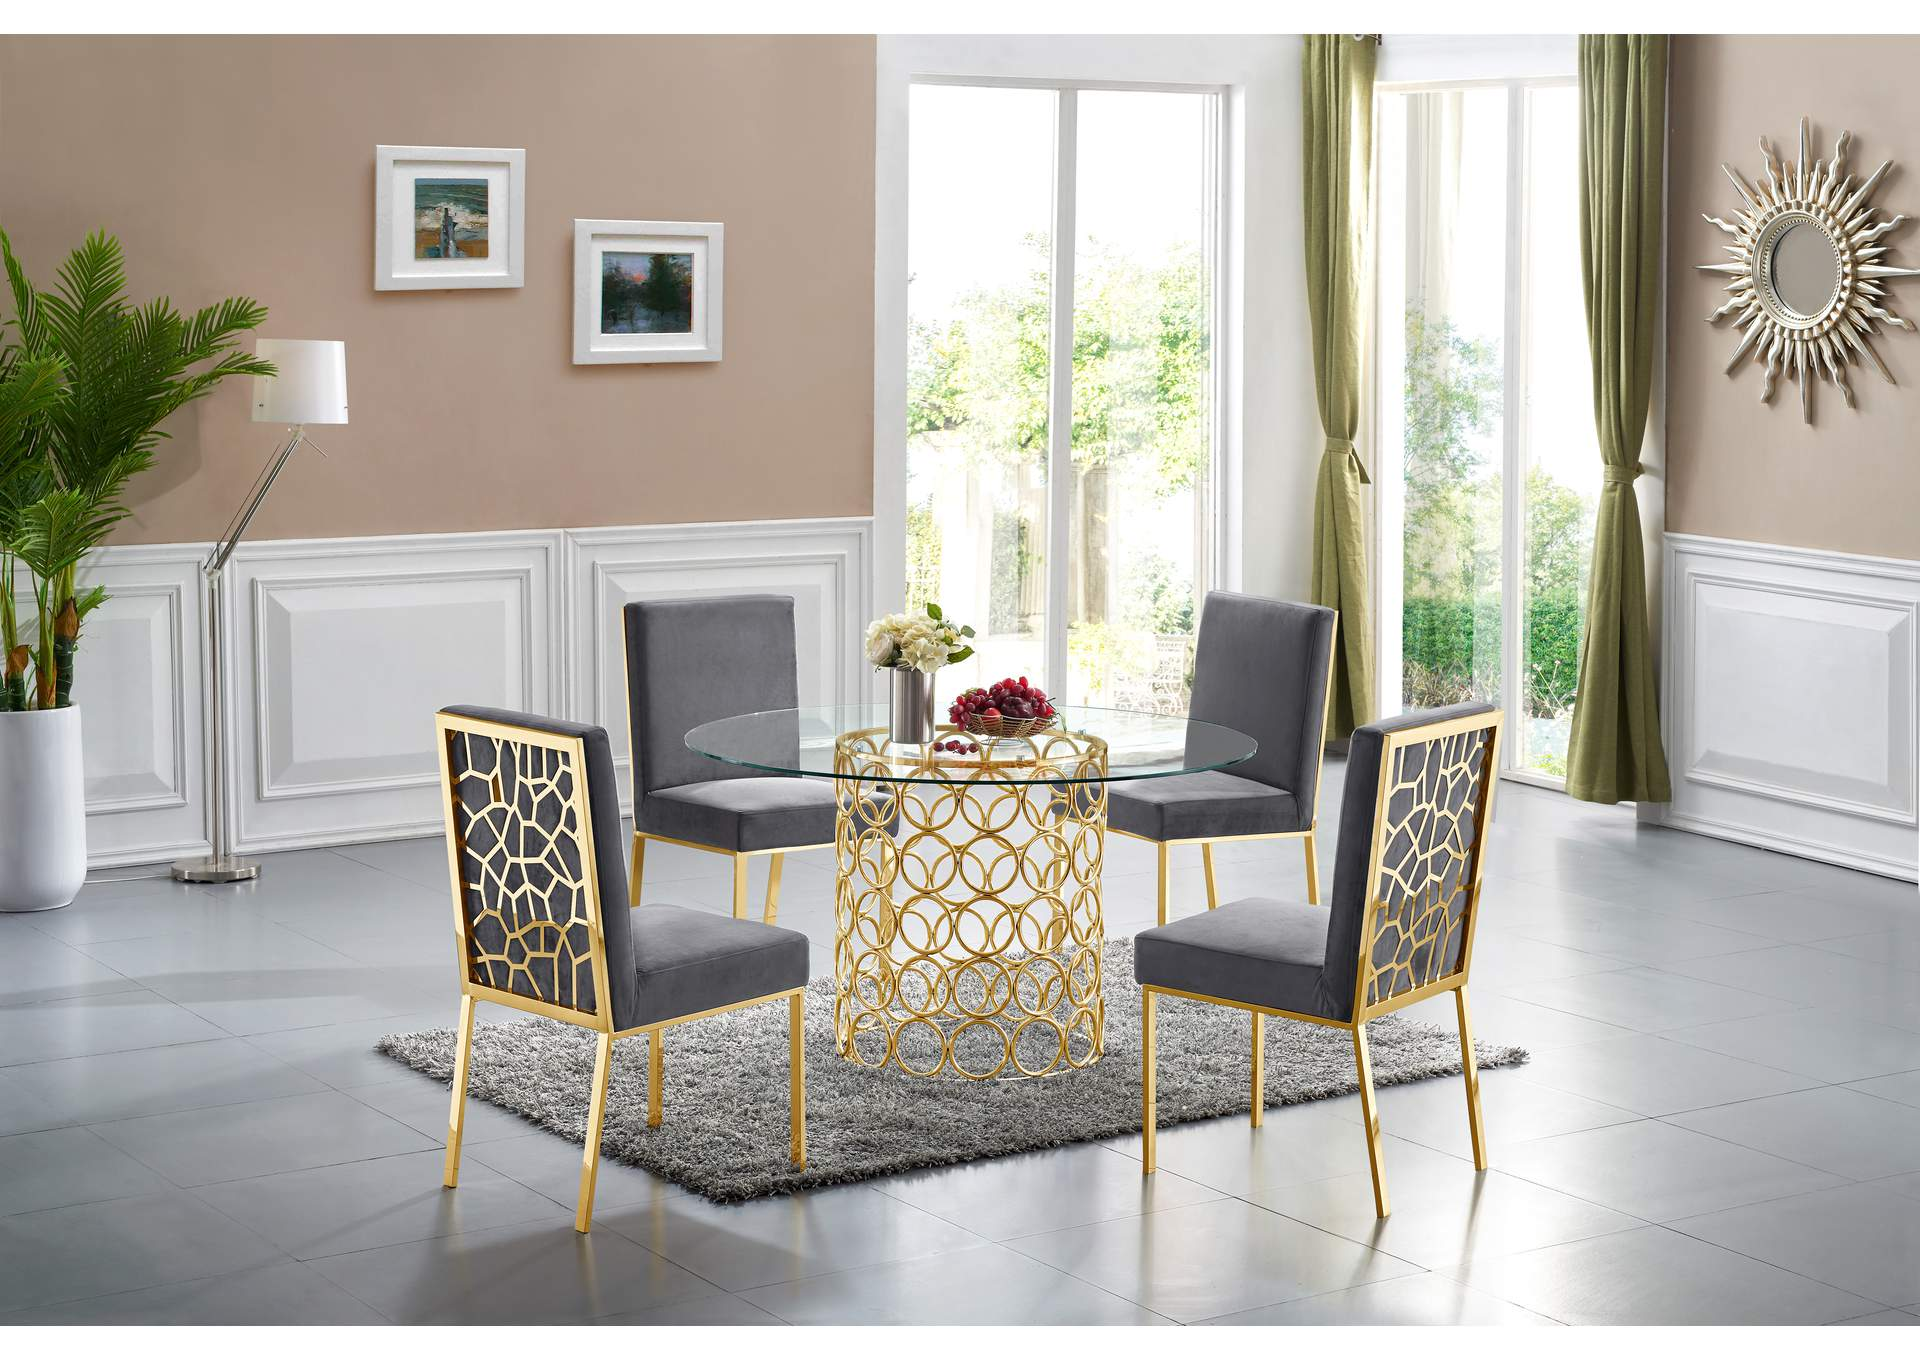 Opal Gold Dining Table W 4 Grey Chair, Gold Dining Room Sets